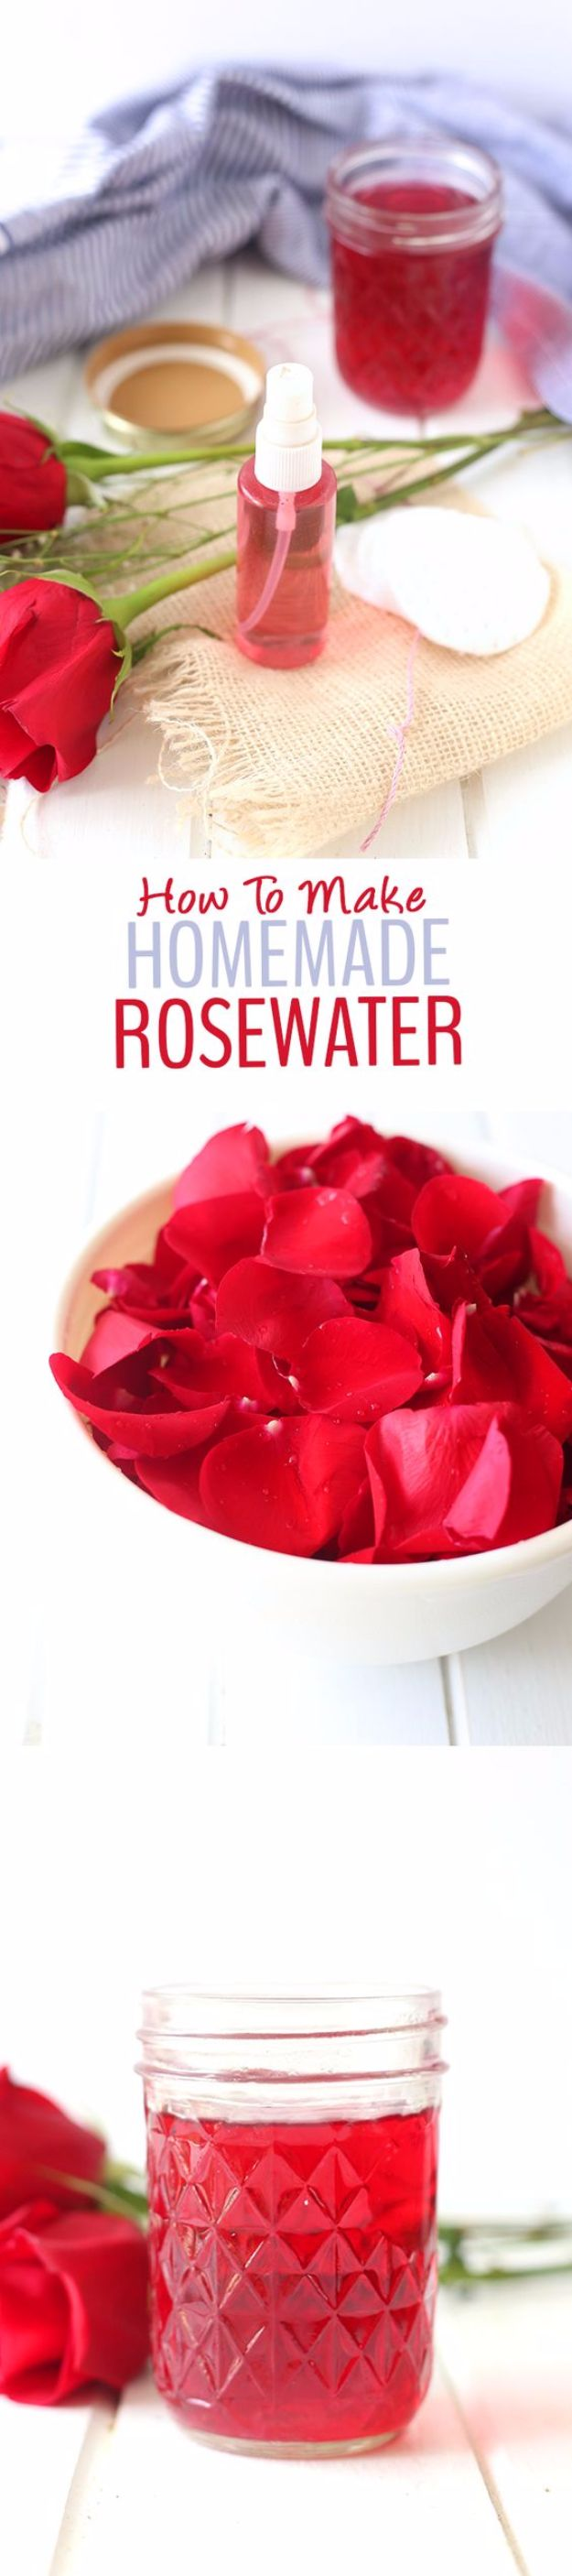 DIY Ideas With Rose Petals - DIY Rosewater Face Toner - Crafts and DIY Projects, Recipes You Can Make With Rose Petals - Creative Home Decor and Gift Ideas Make Awesome Mothers Day and Christmas Gifts - Crafts and Do It Yourself by DIY JOY http://diyjoy.com/diy-ideas-rose-petals